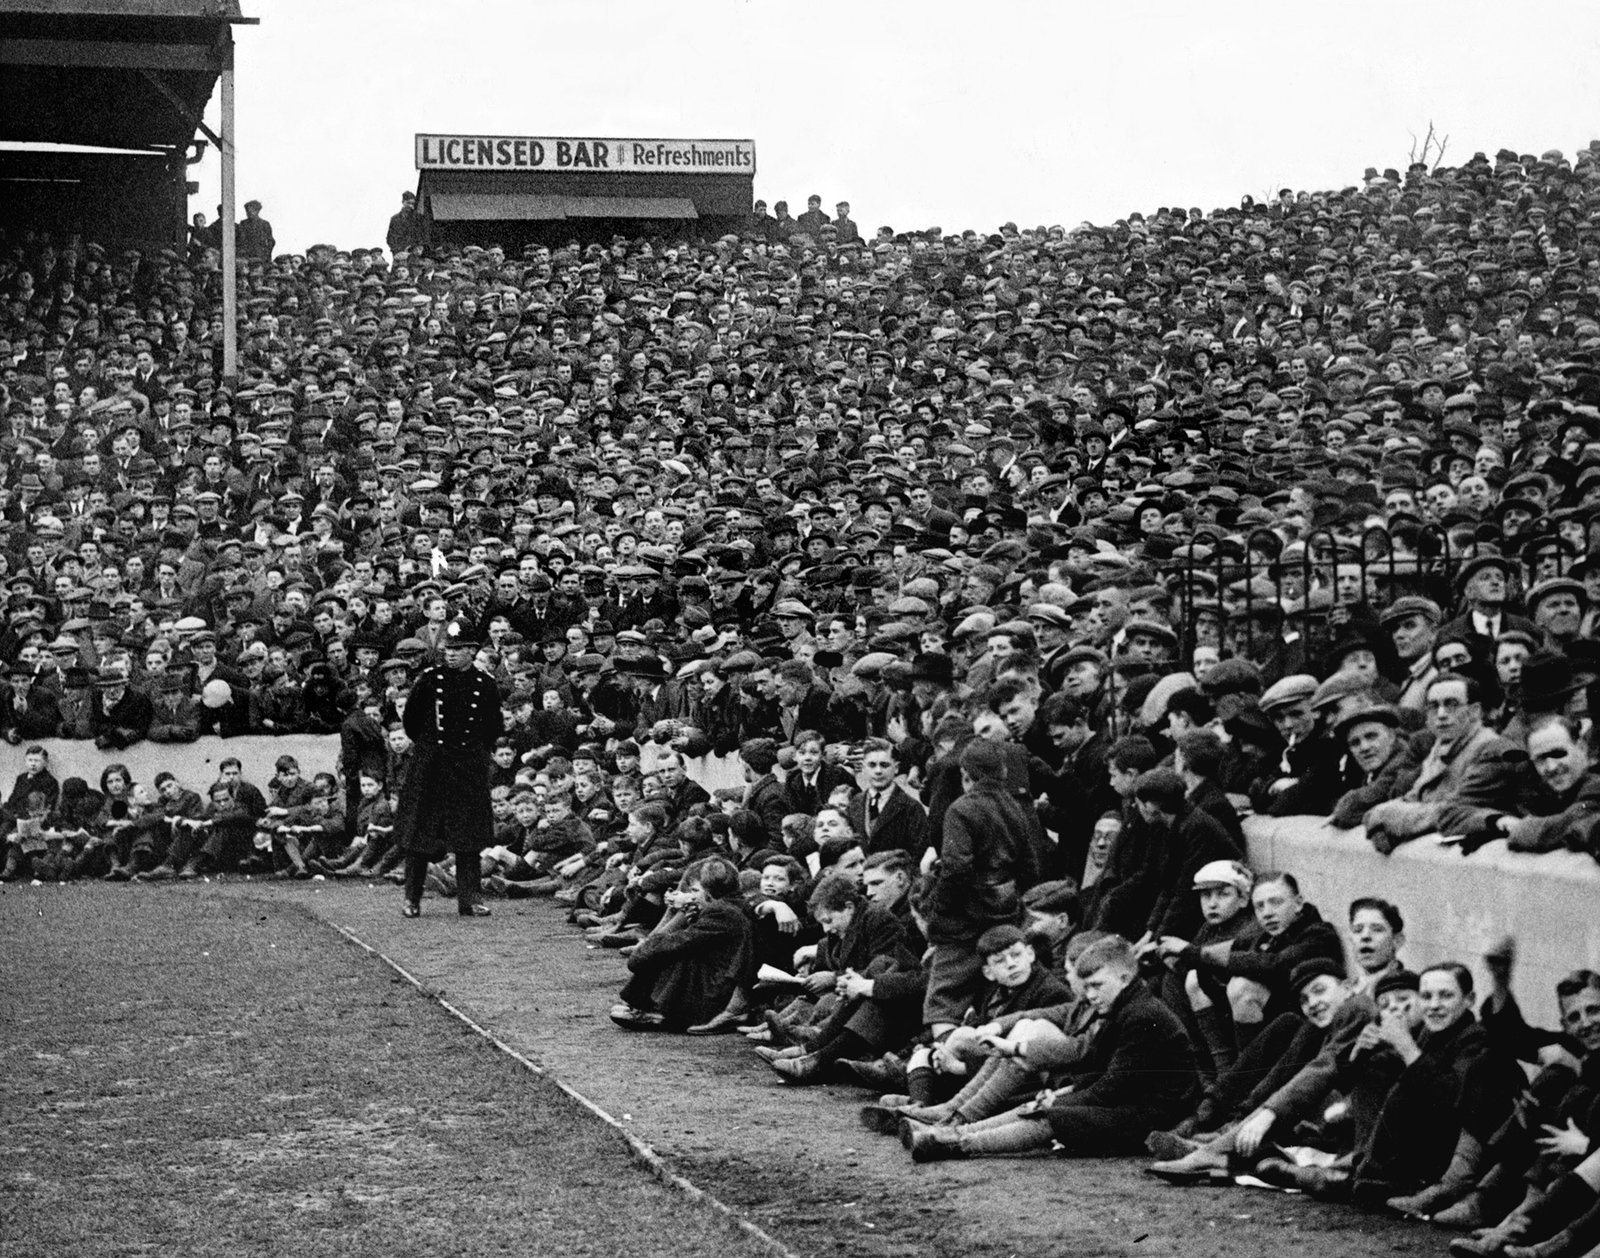 Crowds watching a match at Nottingham Forest Football Club ground, c. 1930's, Nottingham Guardian, Picture the Past OAI feed, Public Domain Mark